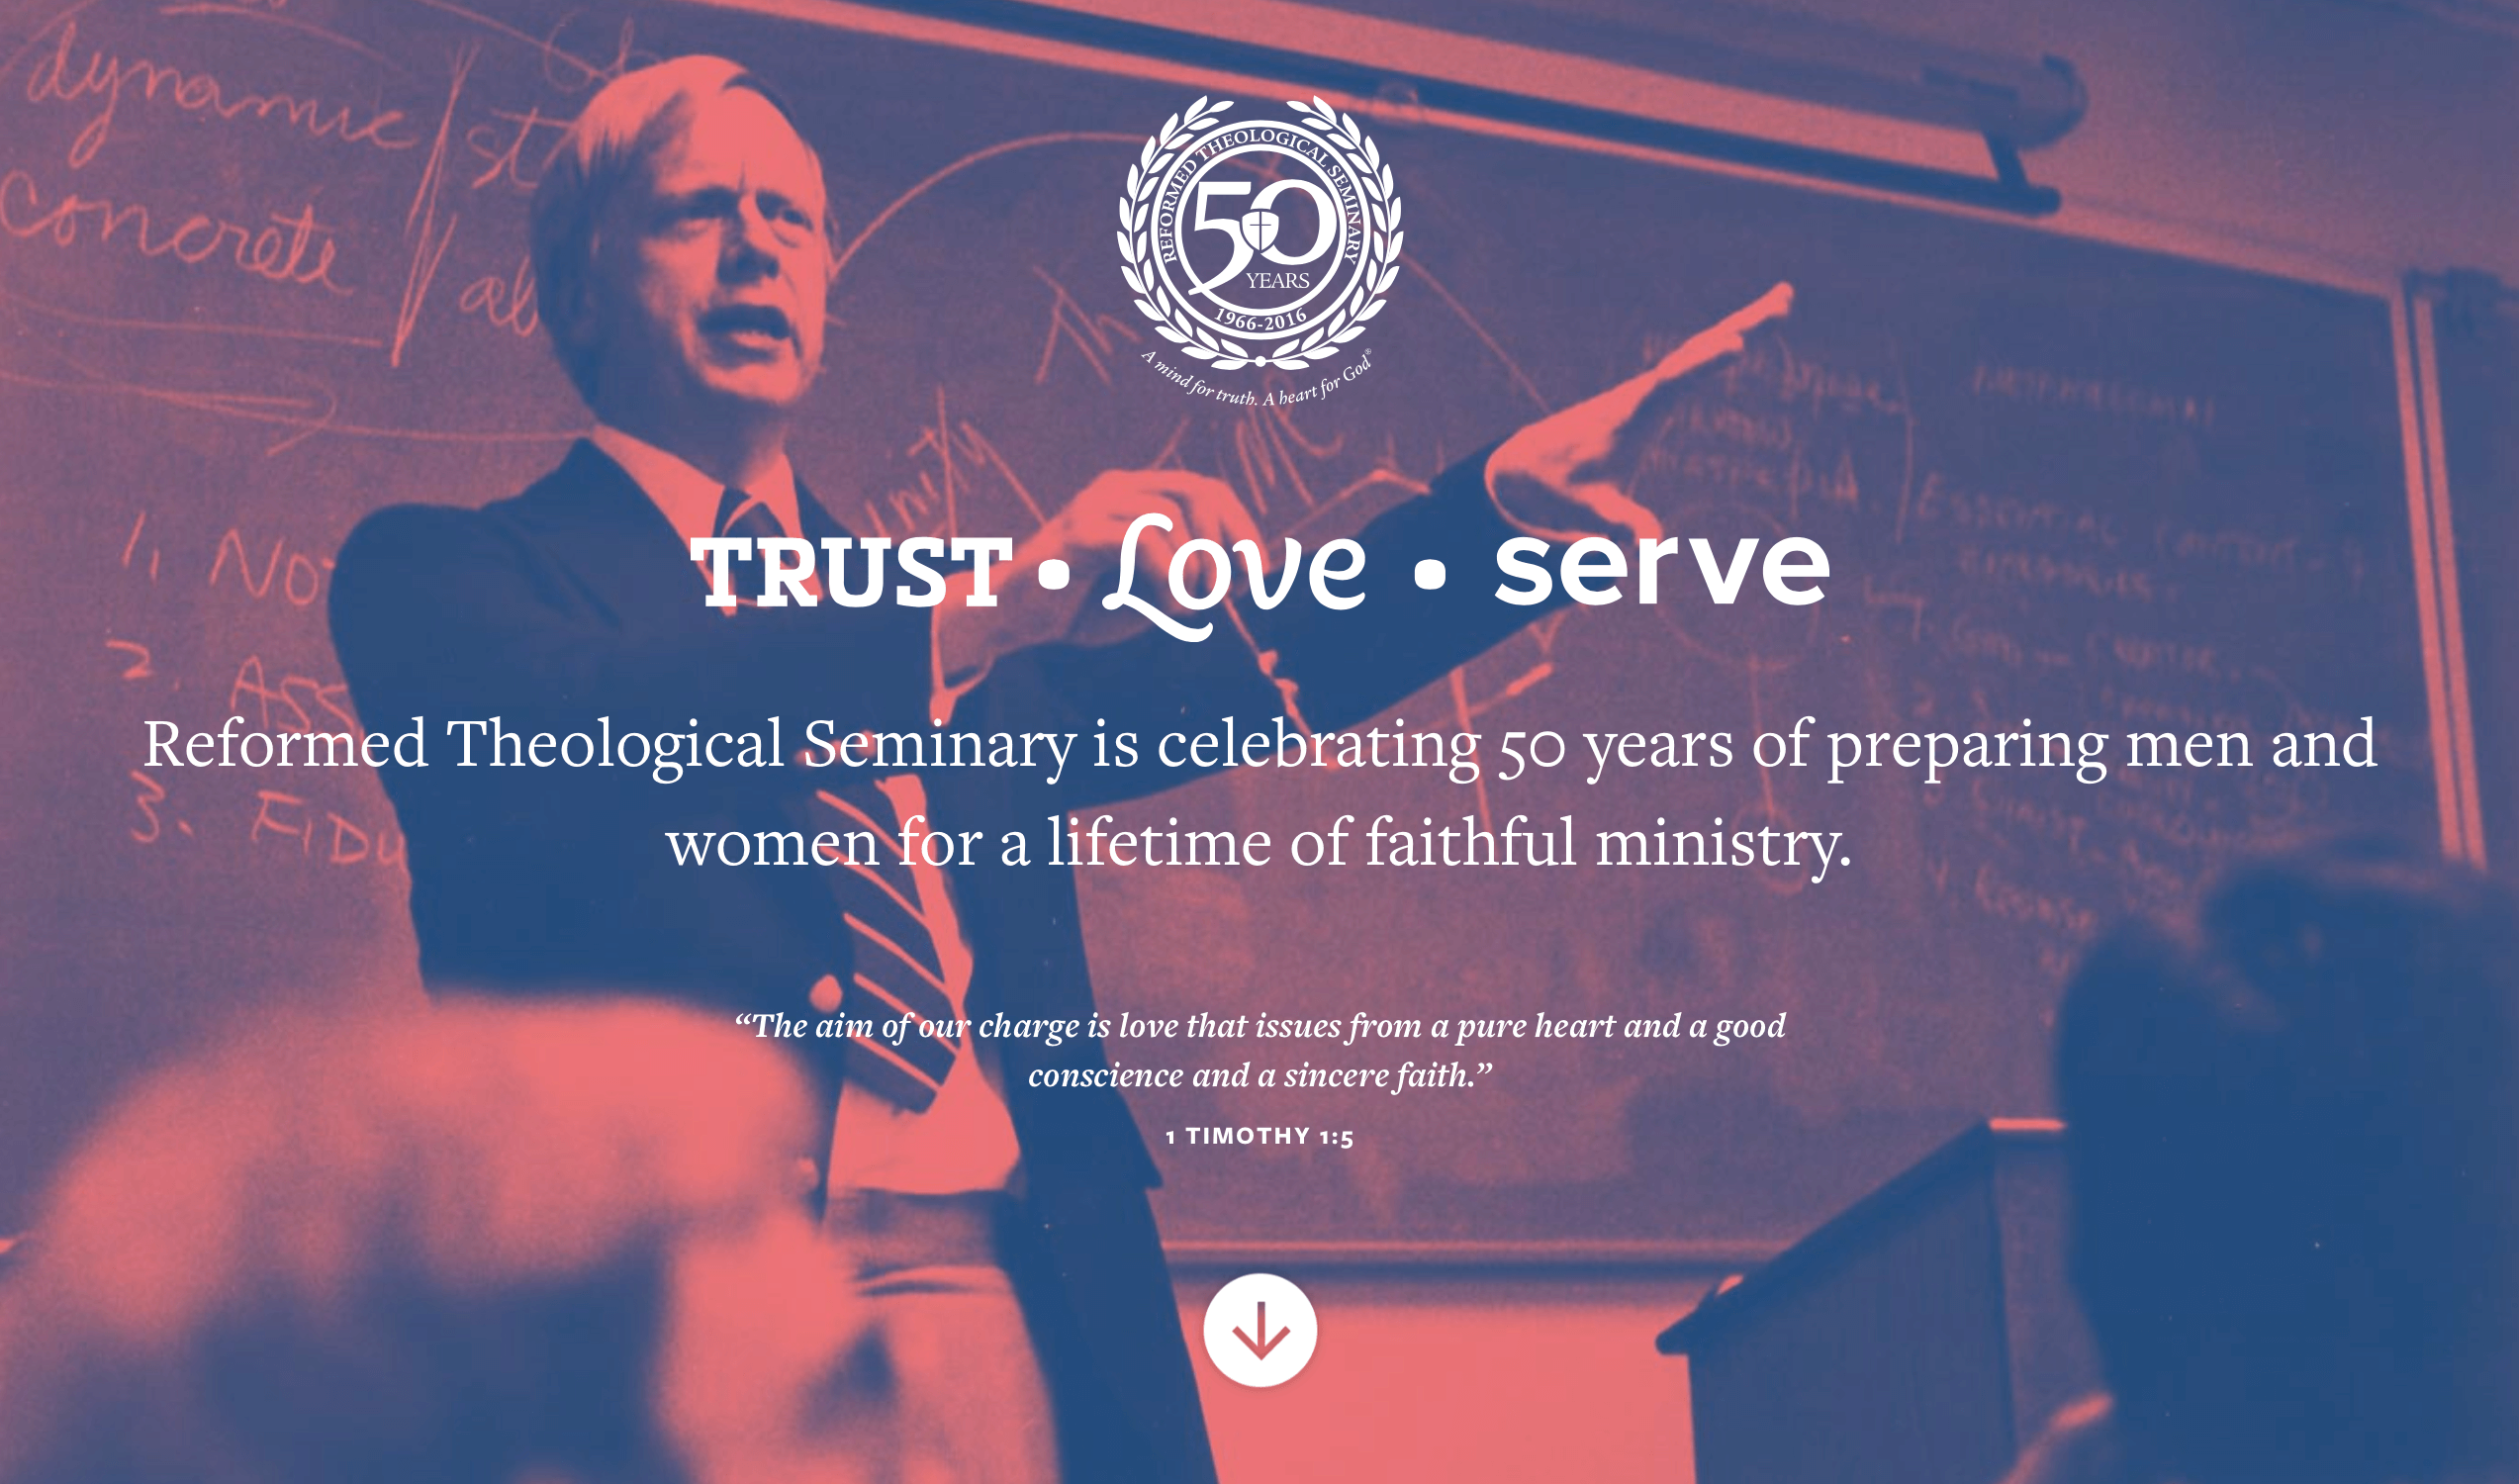 50th microsite intro screen - Trust, Love, Serve overlayed atop an image of a professor